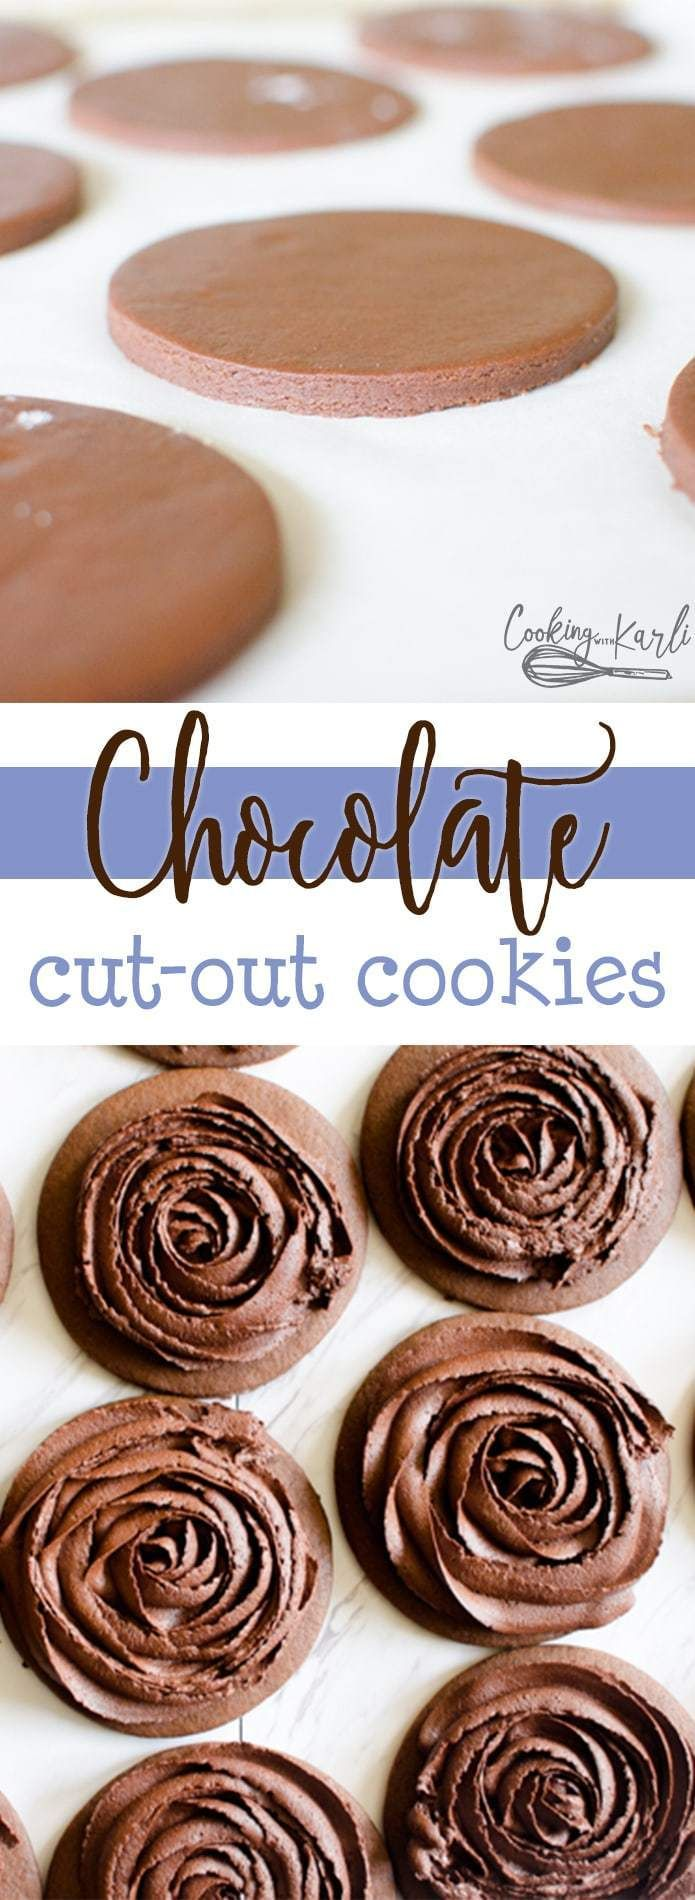 Chocolate Cut-Out Cookies are a rich and fudgy roll and cut cookie. The cookies keep shape, stay soft and disappear quickly! Perfect for showers, parties or celebrations of all kinds these Chocolate Cut-Out cookies are sure to be a hit! |Cooking with Karli| #chocolate #cutout #cookie #recipe #dessert #rollandcut #rich #quickcookierecipes